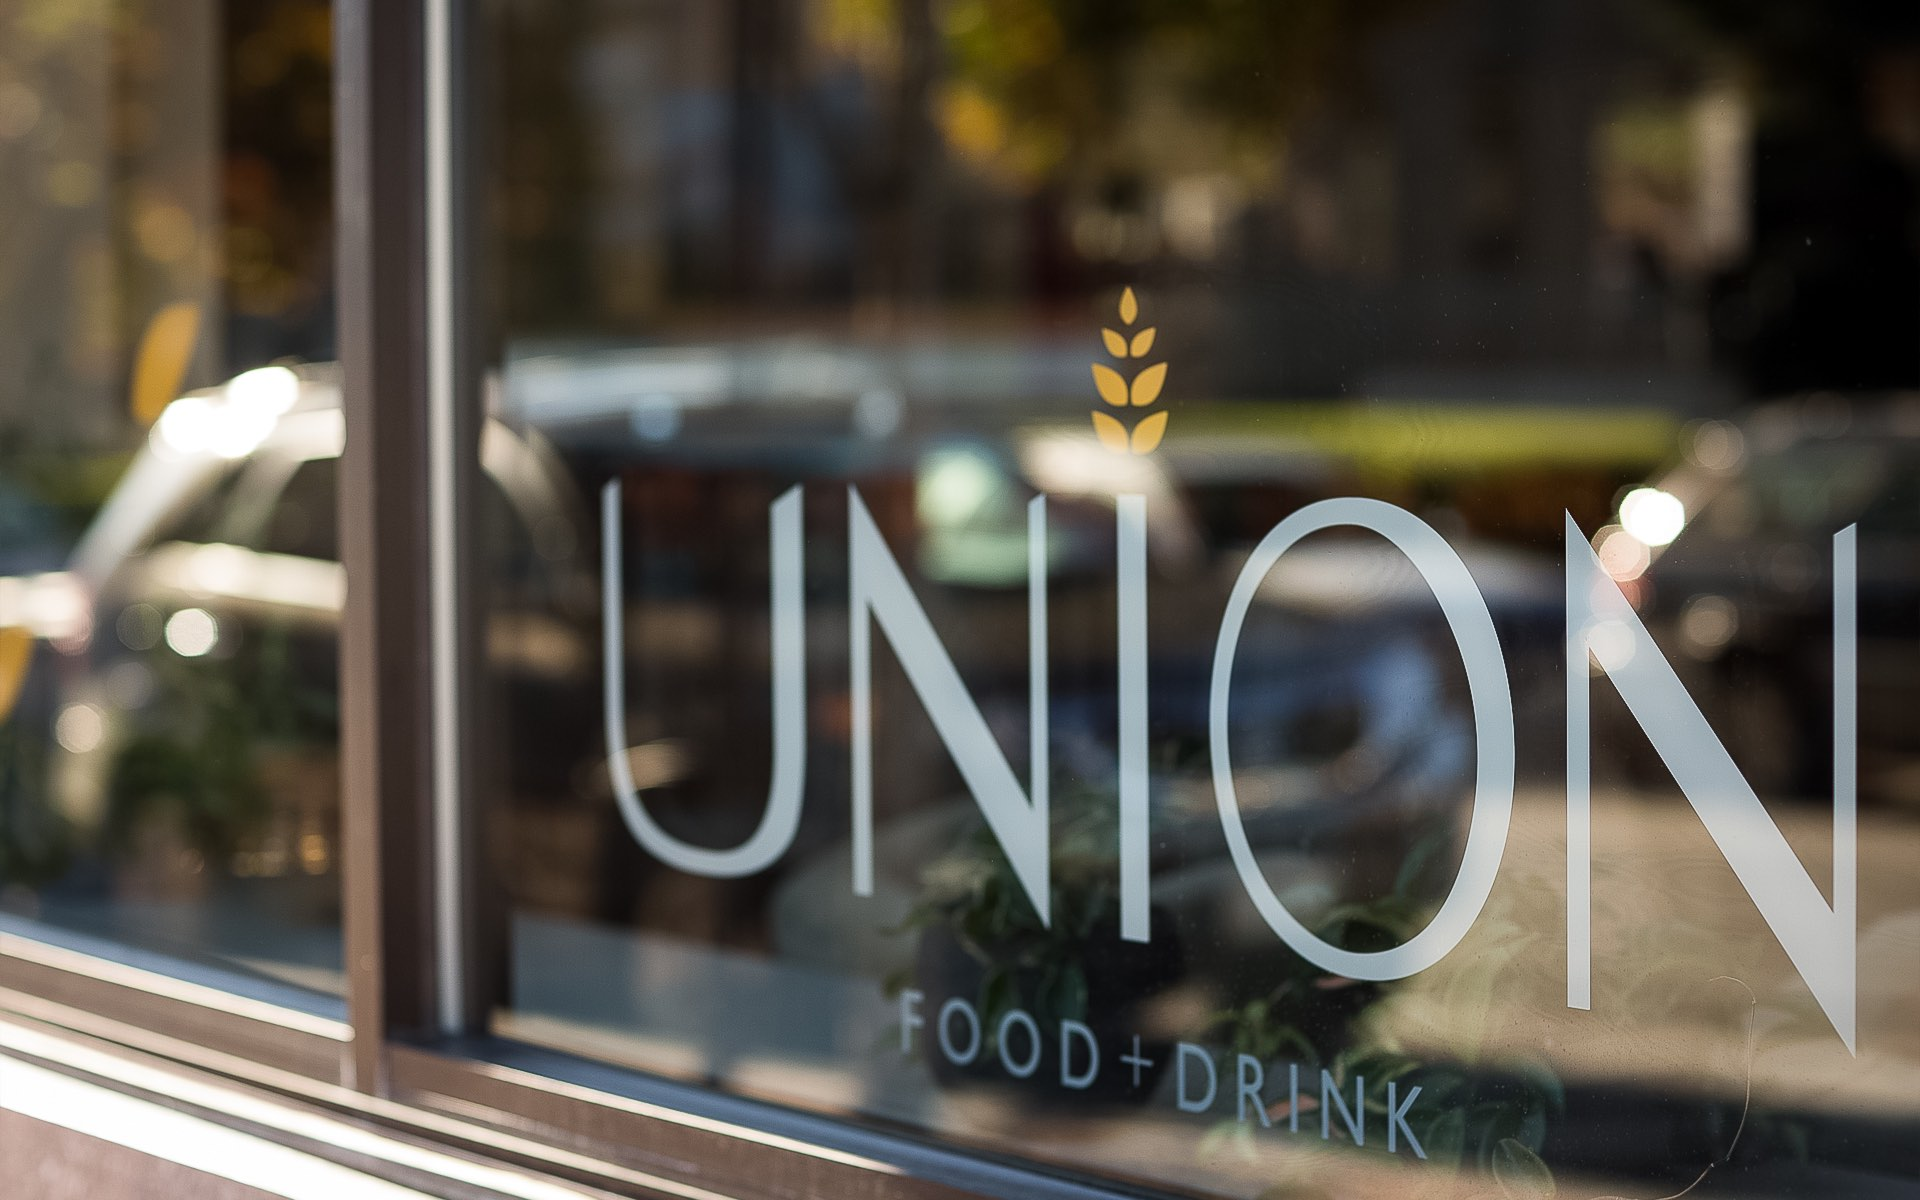 union sign on restaurant window